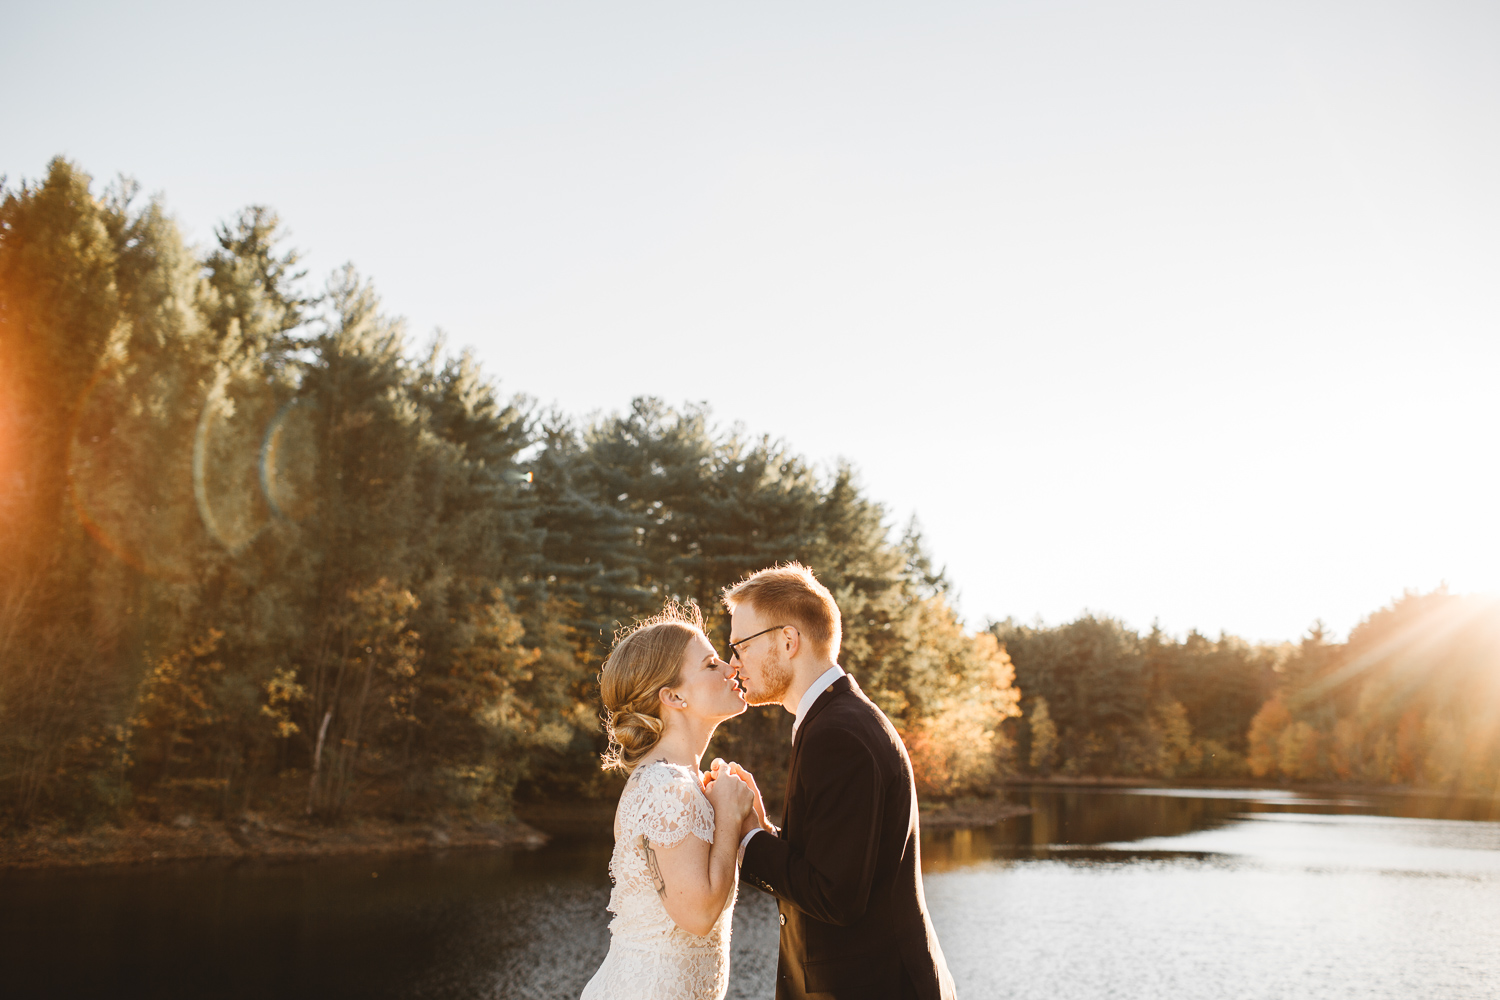 Boston-Elopement-Style-Wedding-Ceremony-Anthropologie-Photographer-Madly-09.jpg